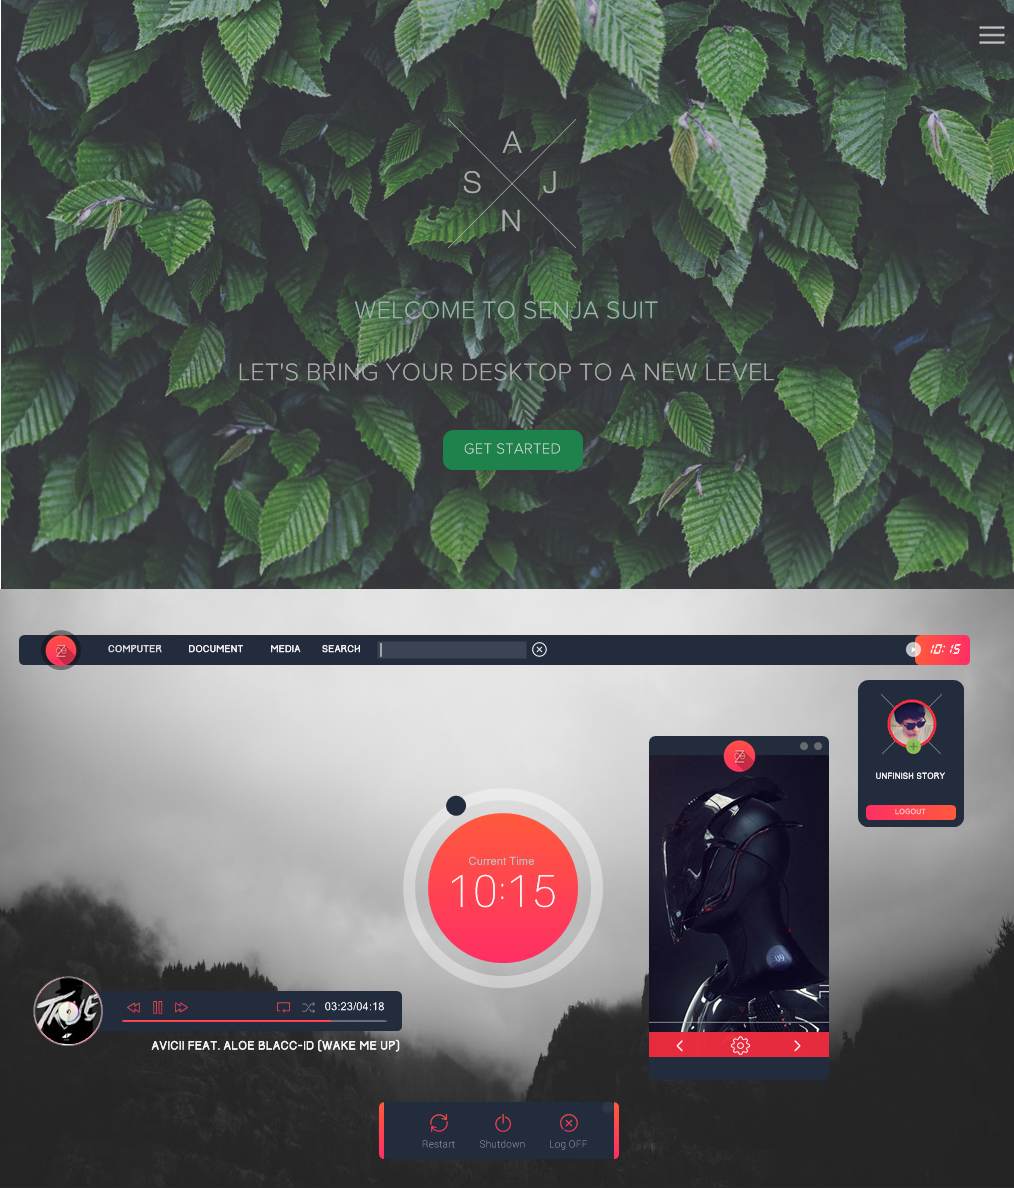 Senja v 1.0 xwidget skin by unfinishstory